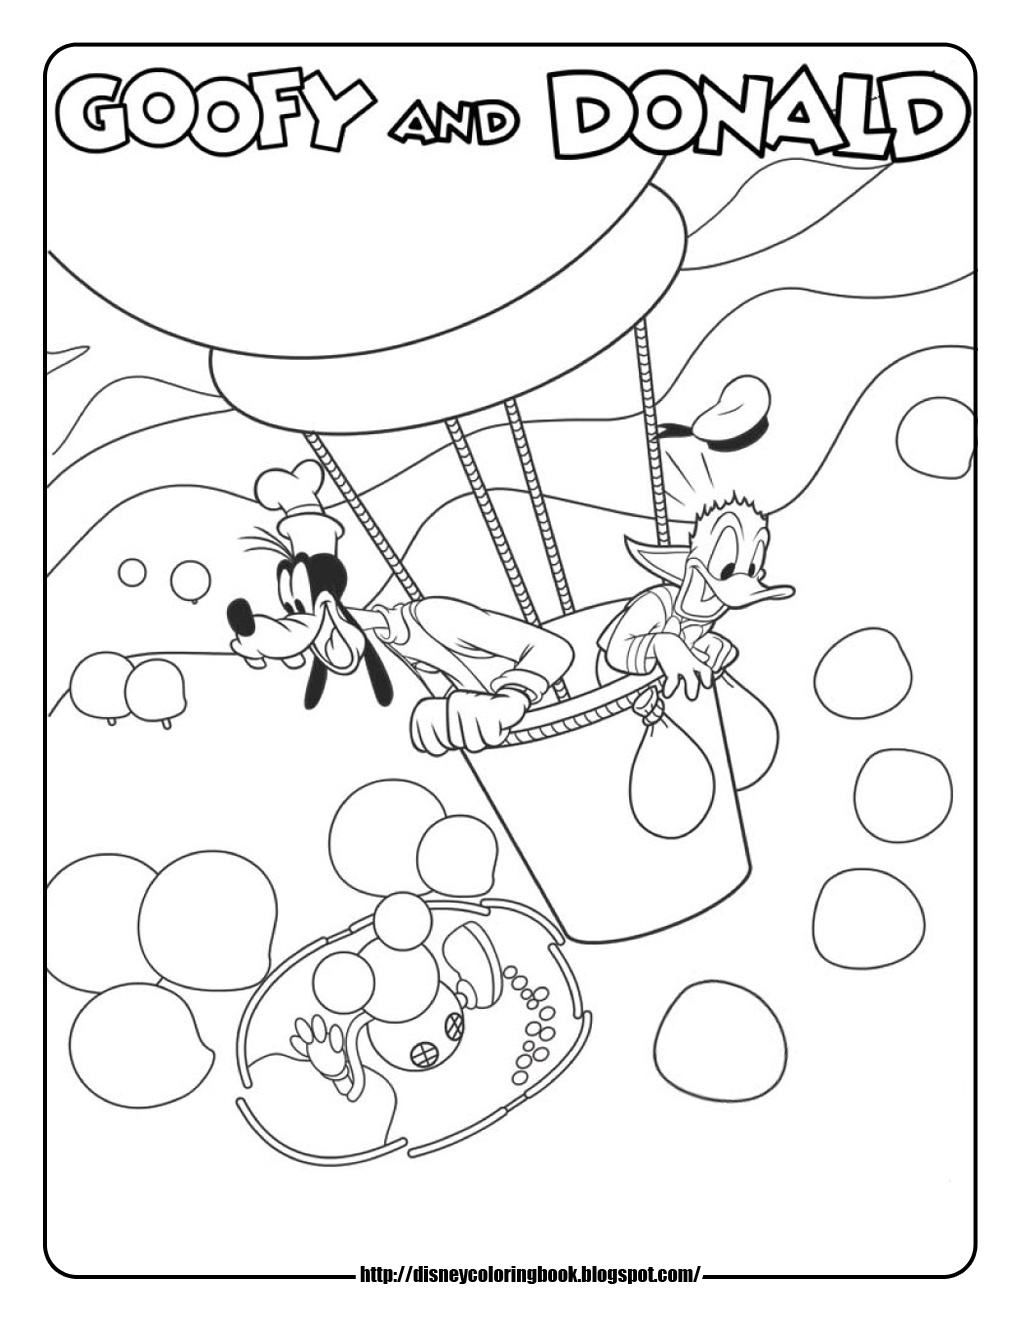 1020x1320 Mickey Mouse Coloring Pages Goofy Donald Hot Air Balloon Abcs New